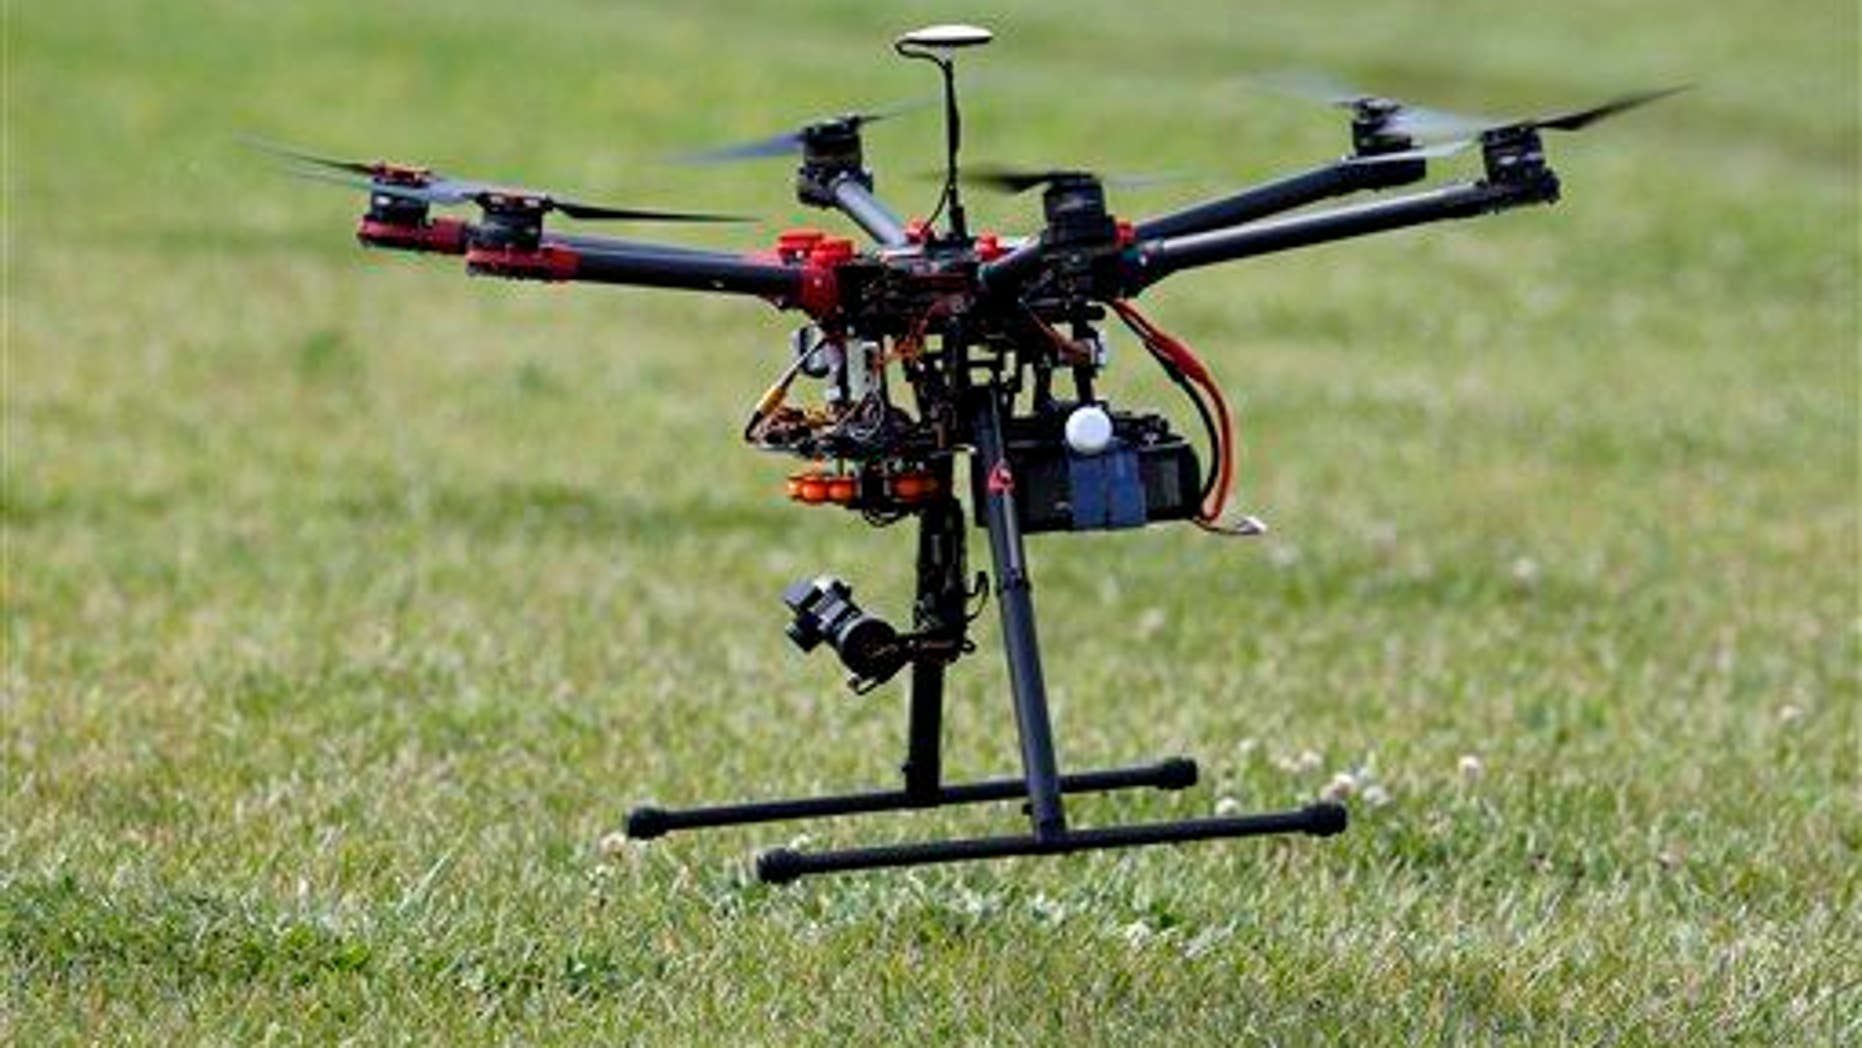 In this photo taken June 11, 2015, a hexacopter drone is flown during a demonstration in Cordova, Md.